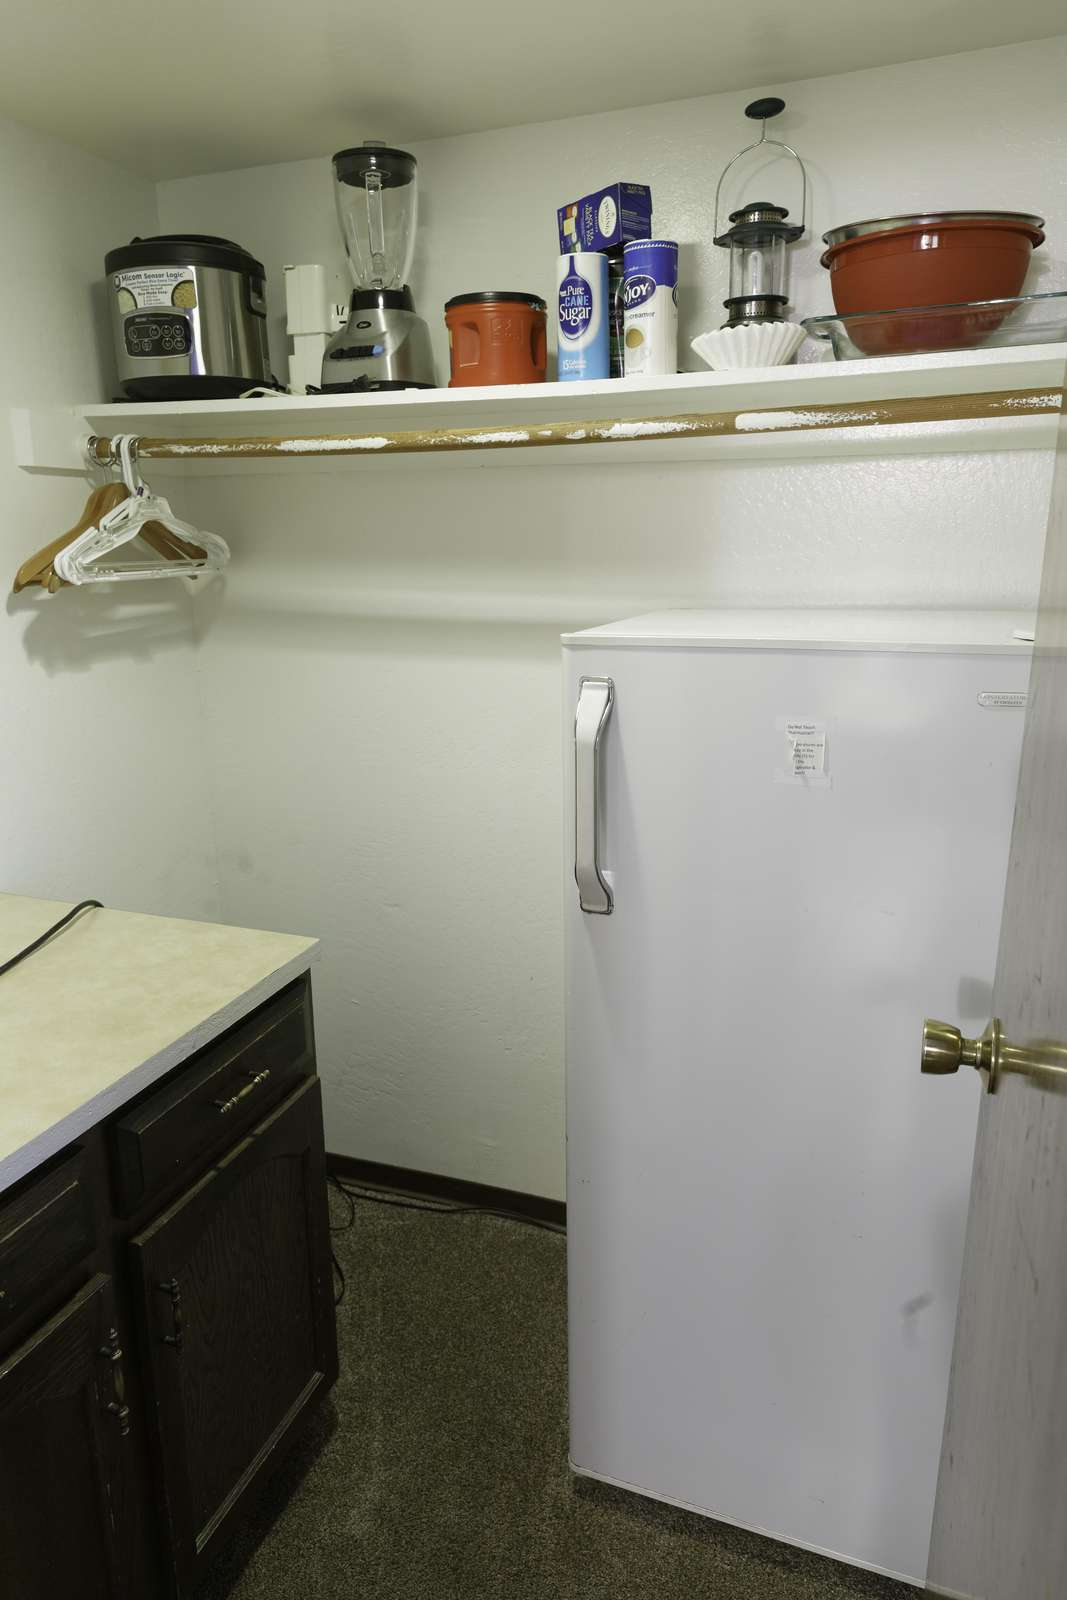 The refrigerator in the walk-in closet behind the kitchen.